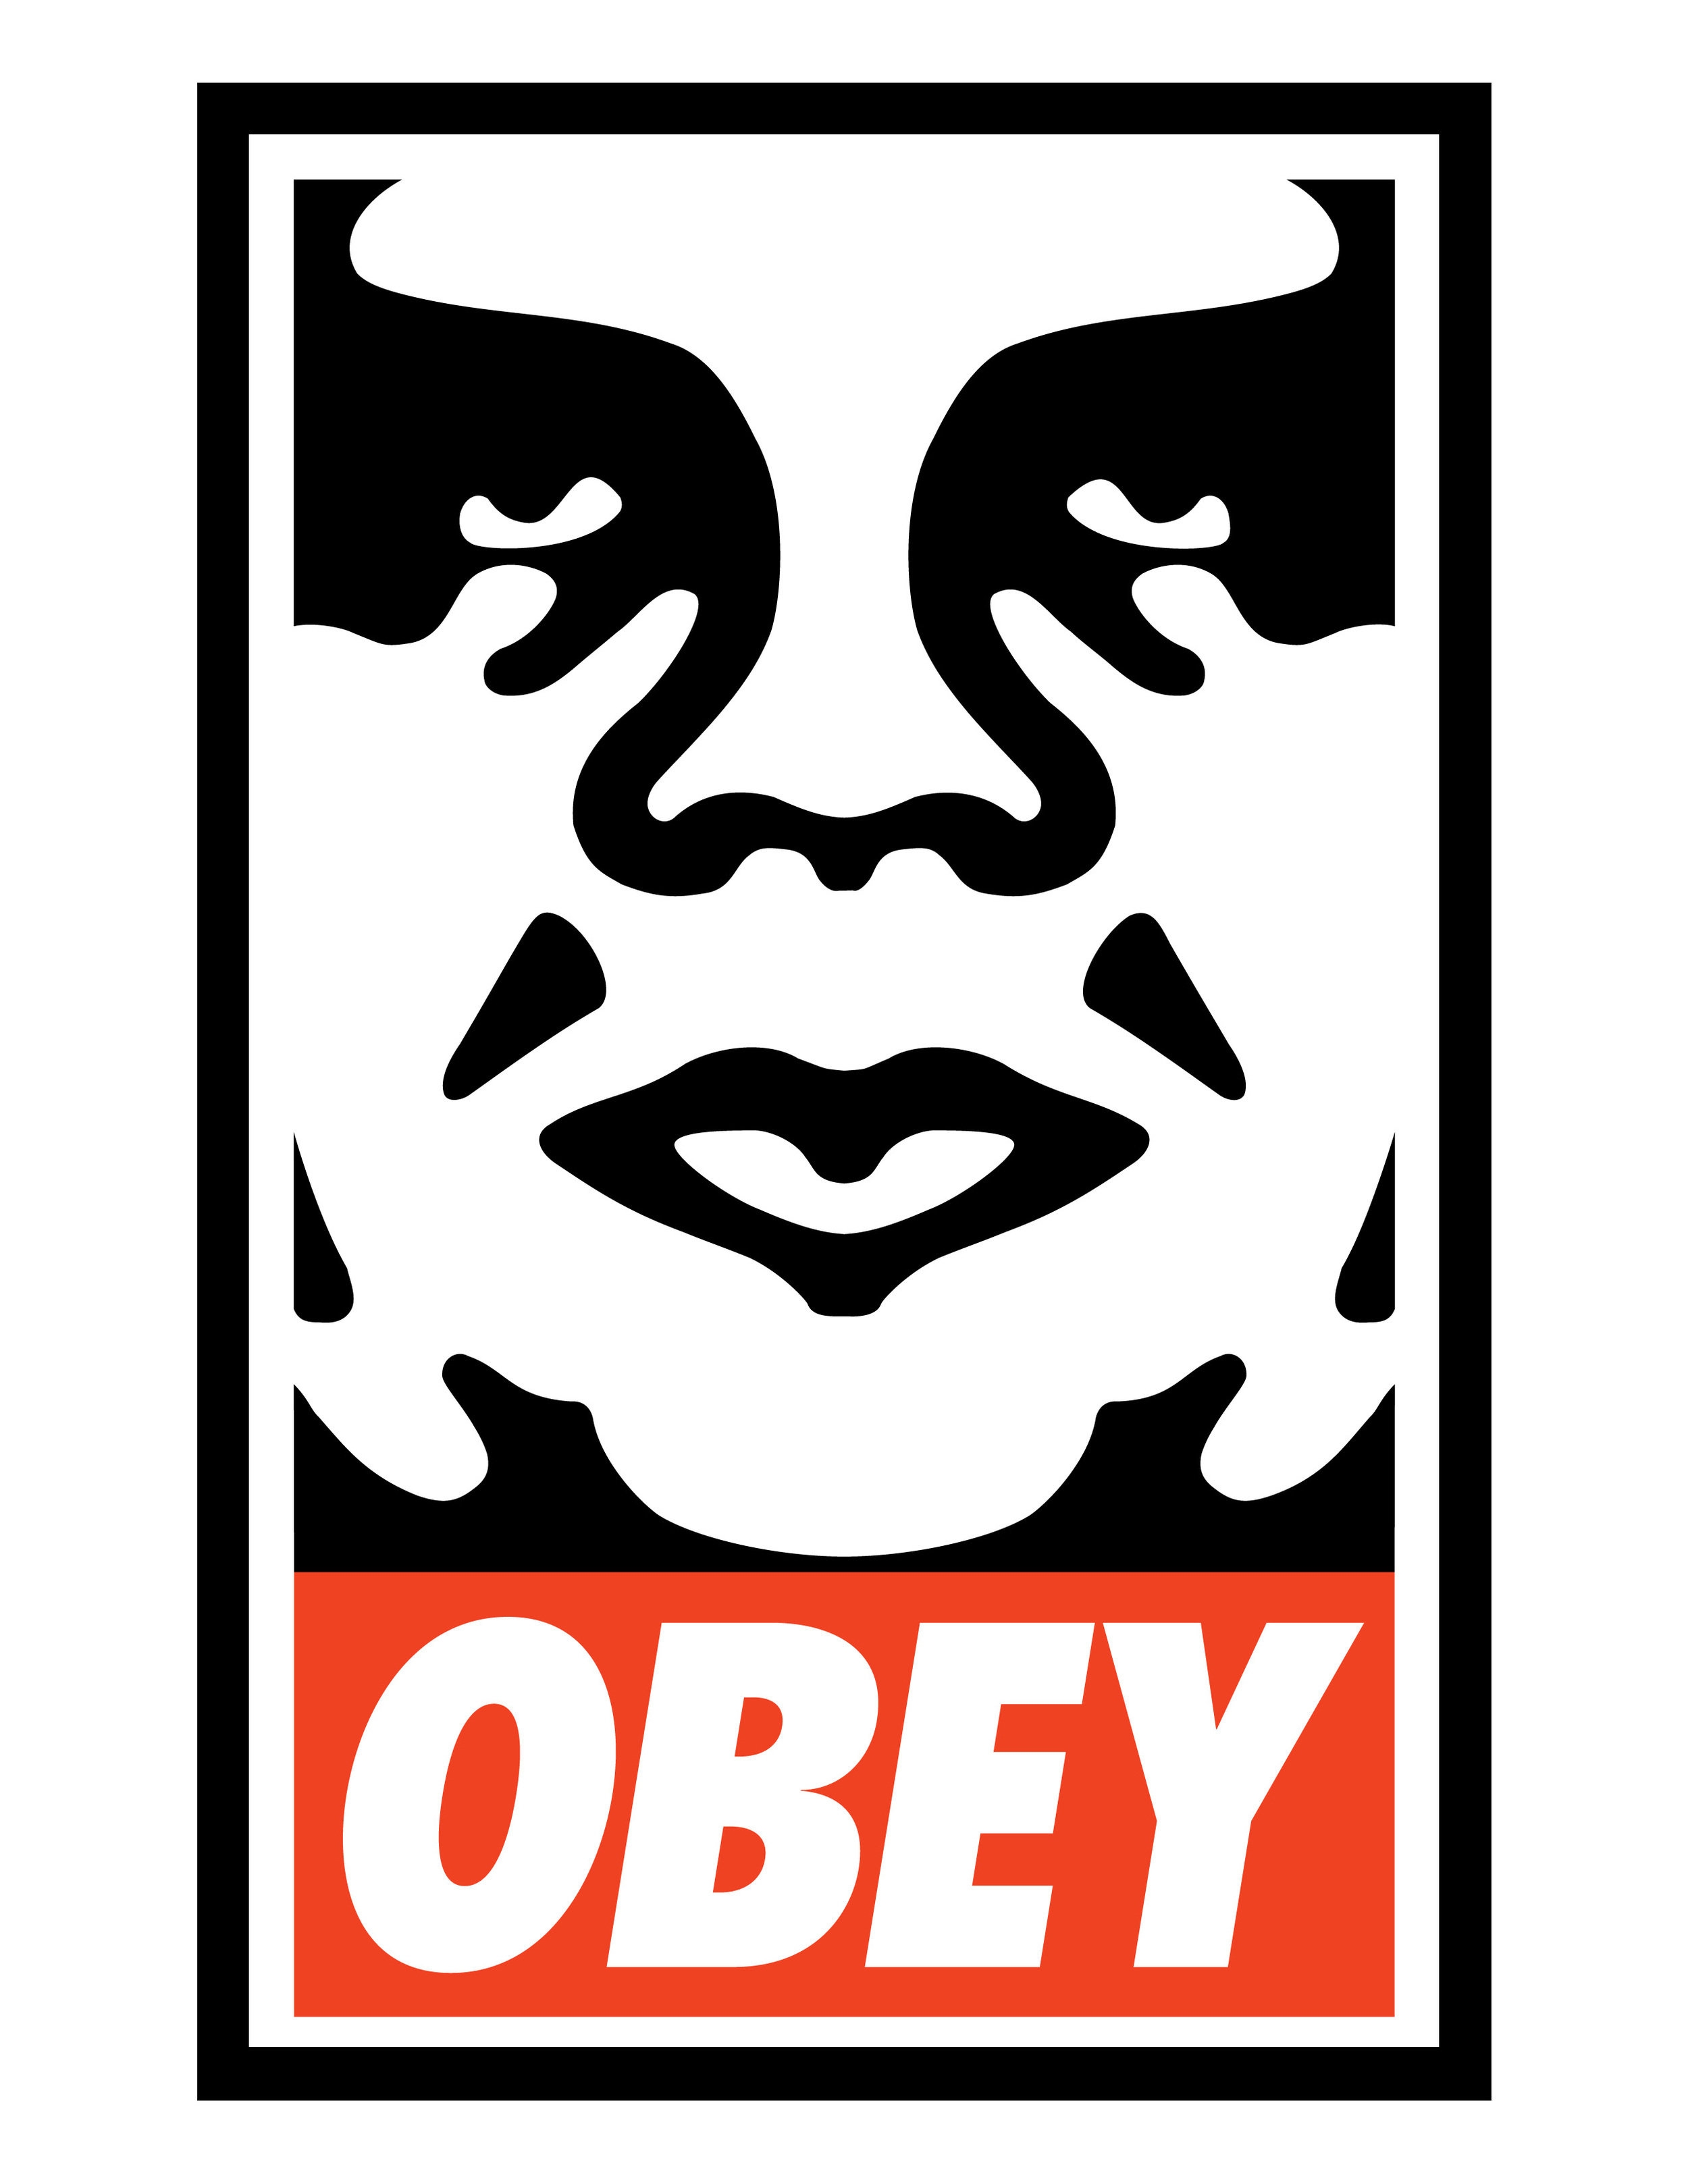 Shepard Fairey's OBEY with the Andre the Giant face